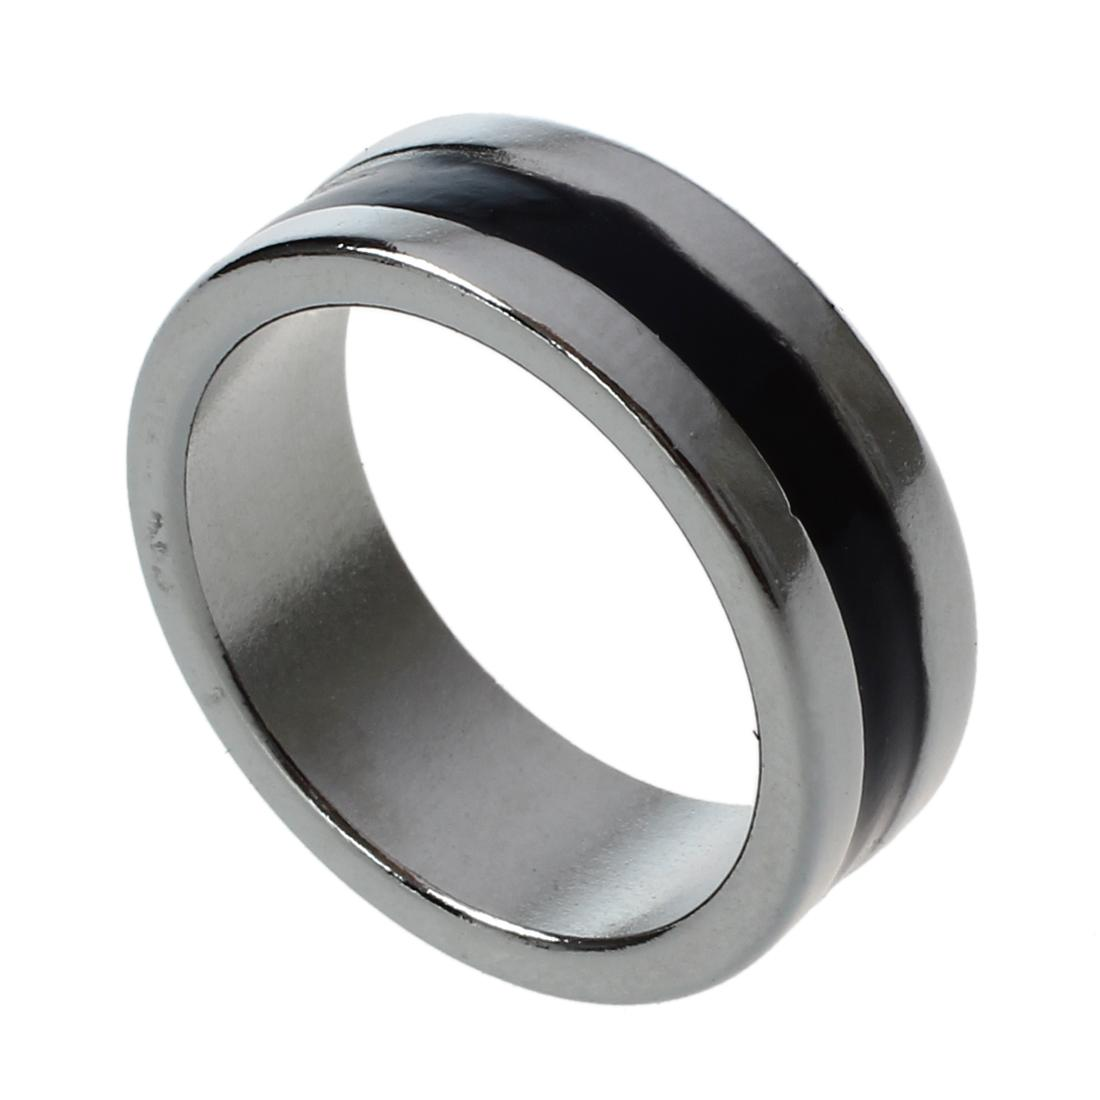 Wholesale- ABWE Best Sale Magical Magic Tricks Pro Ring PK Strong Magnetic Mythical Decor Size 18MM